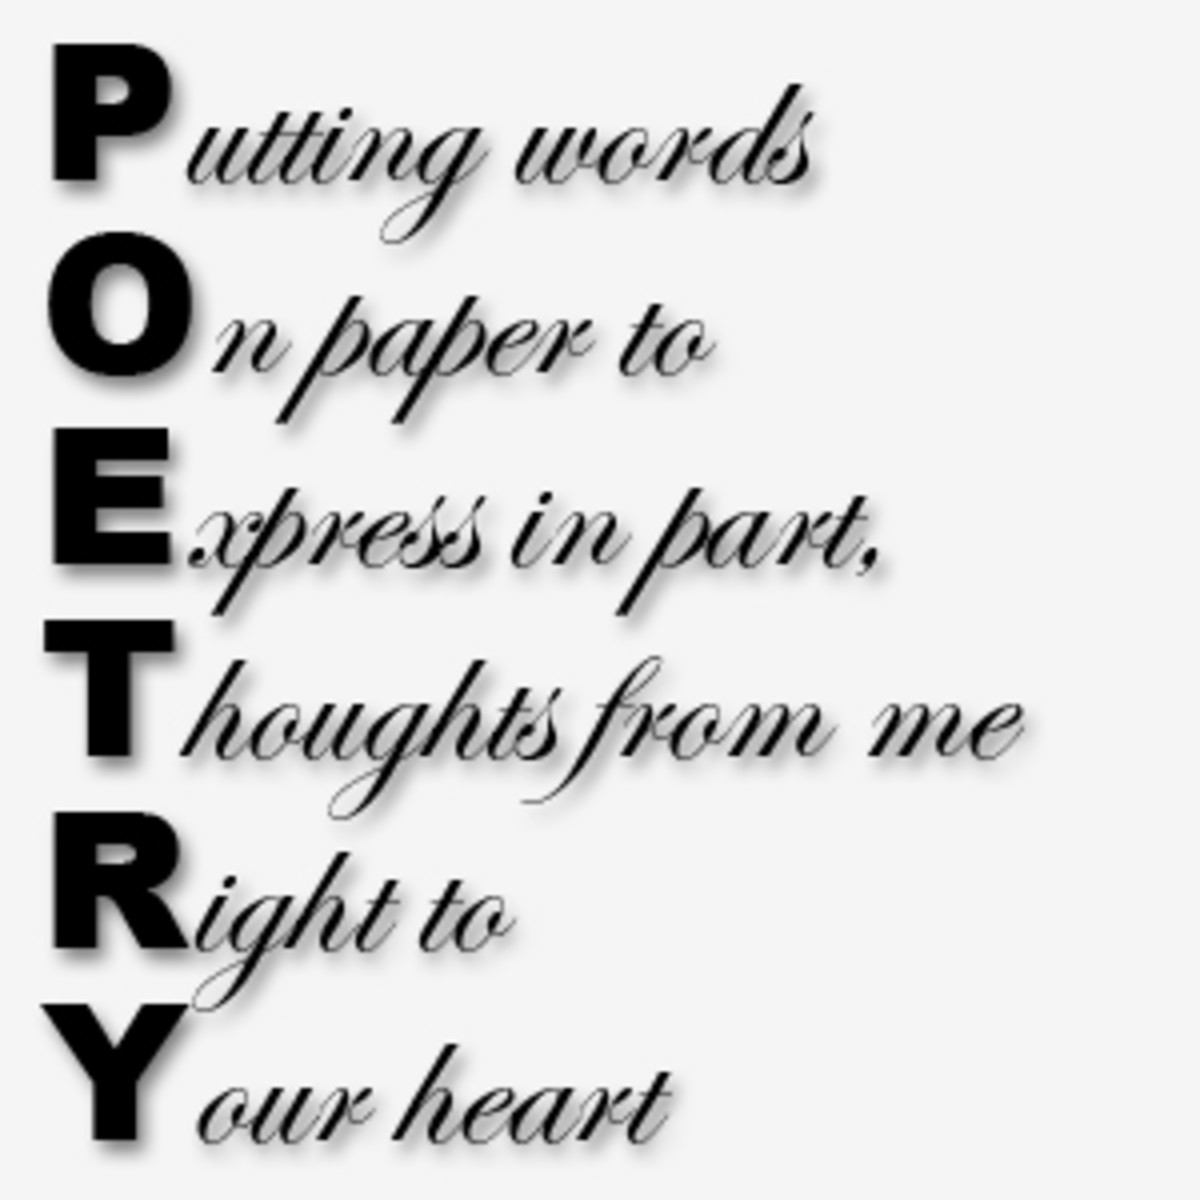 an Acrostic Poem About Poetry